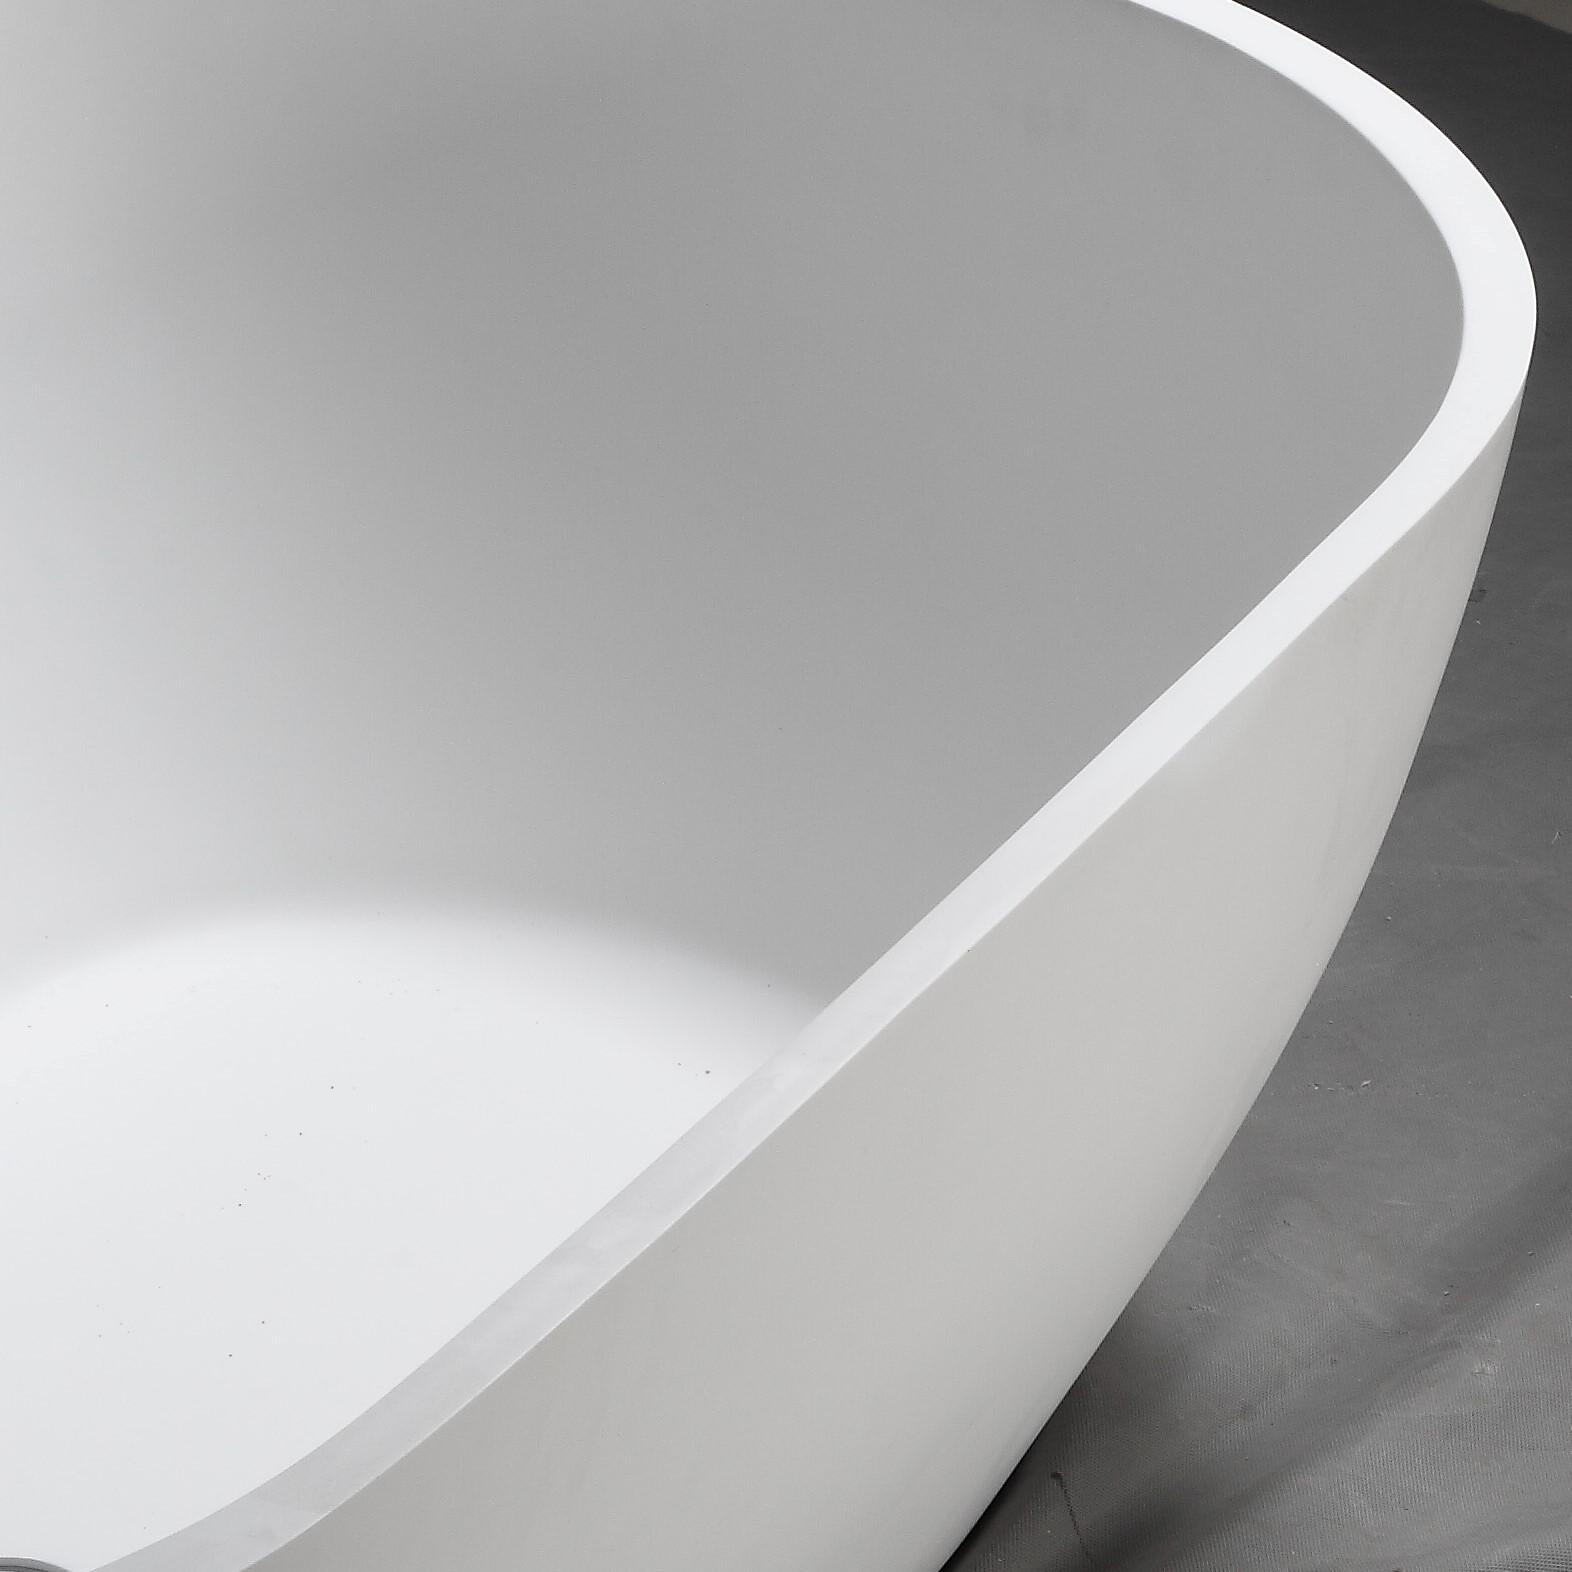 Bellissimo-Curve Edge Shaped Freestanding Solid Surface Composite Resin-7